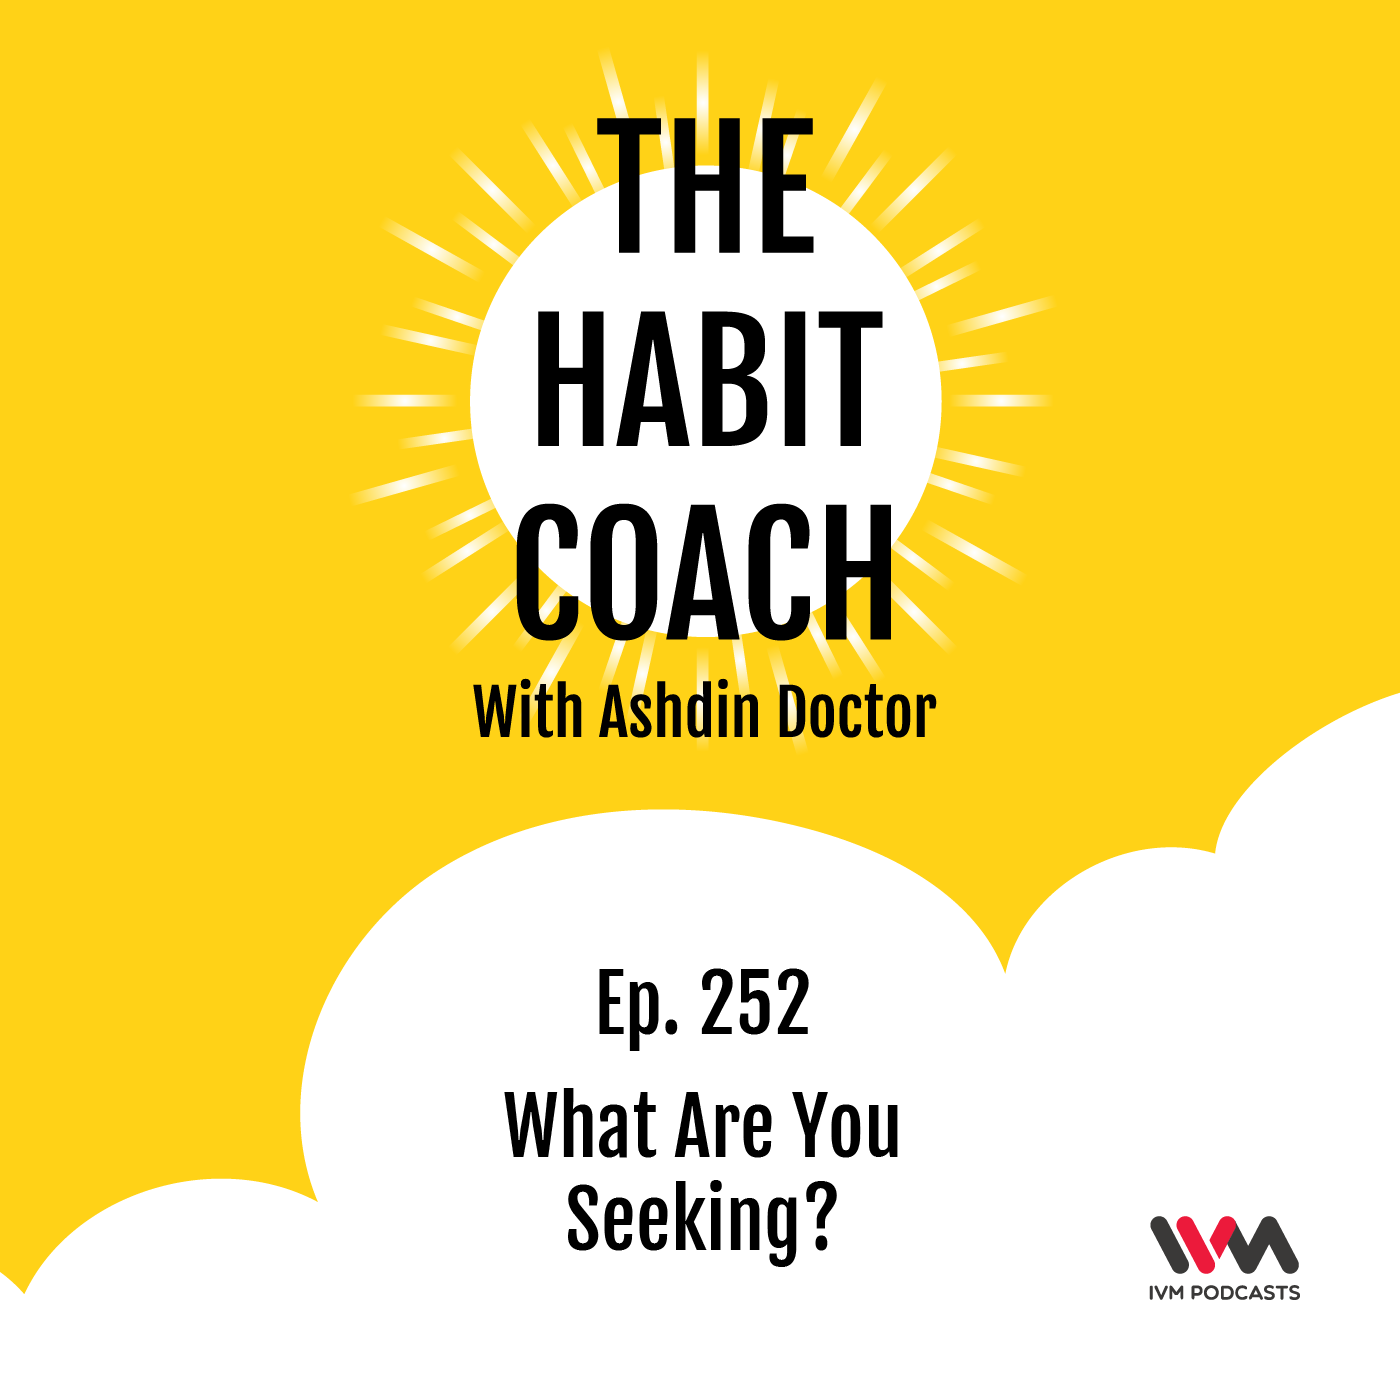 Ep. 252: What Are You Seeking?